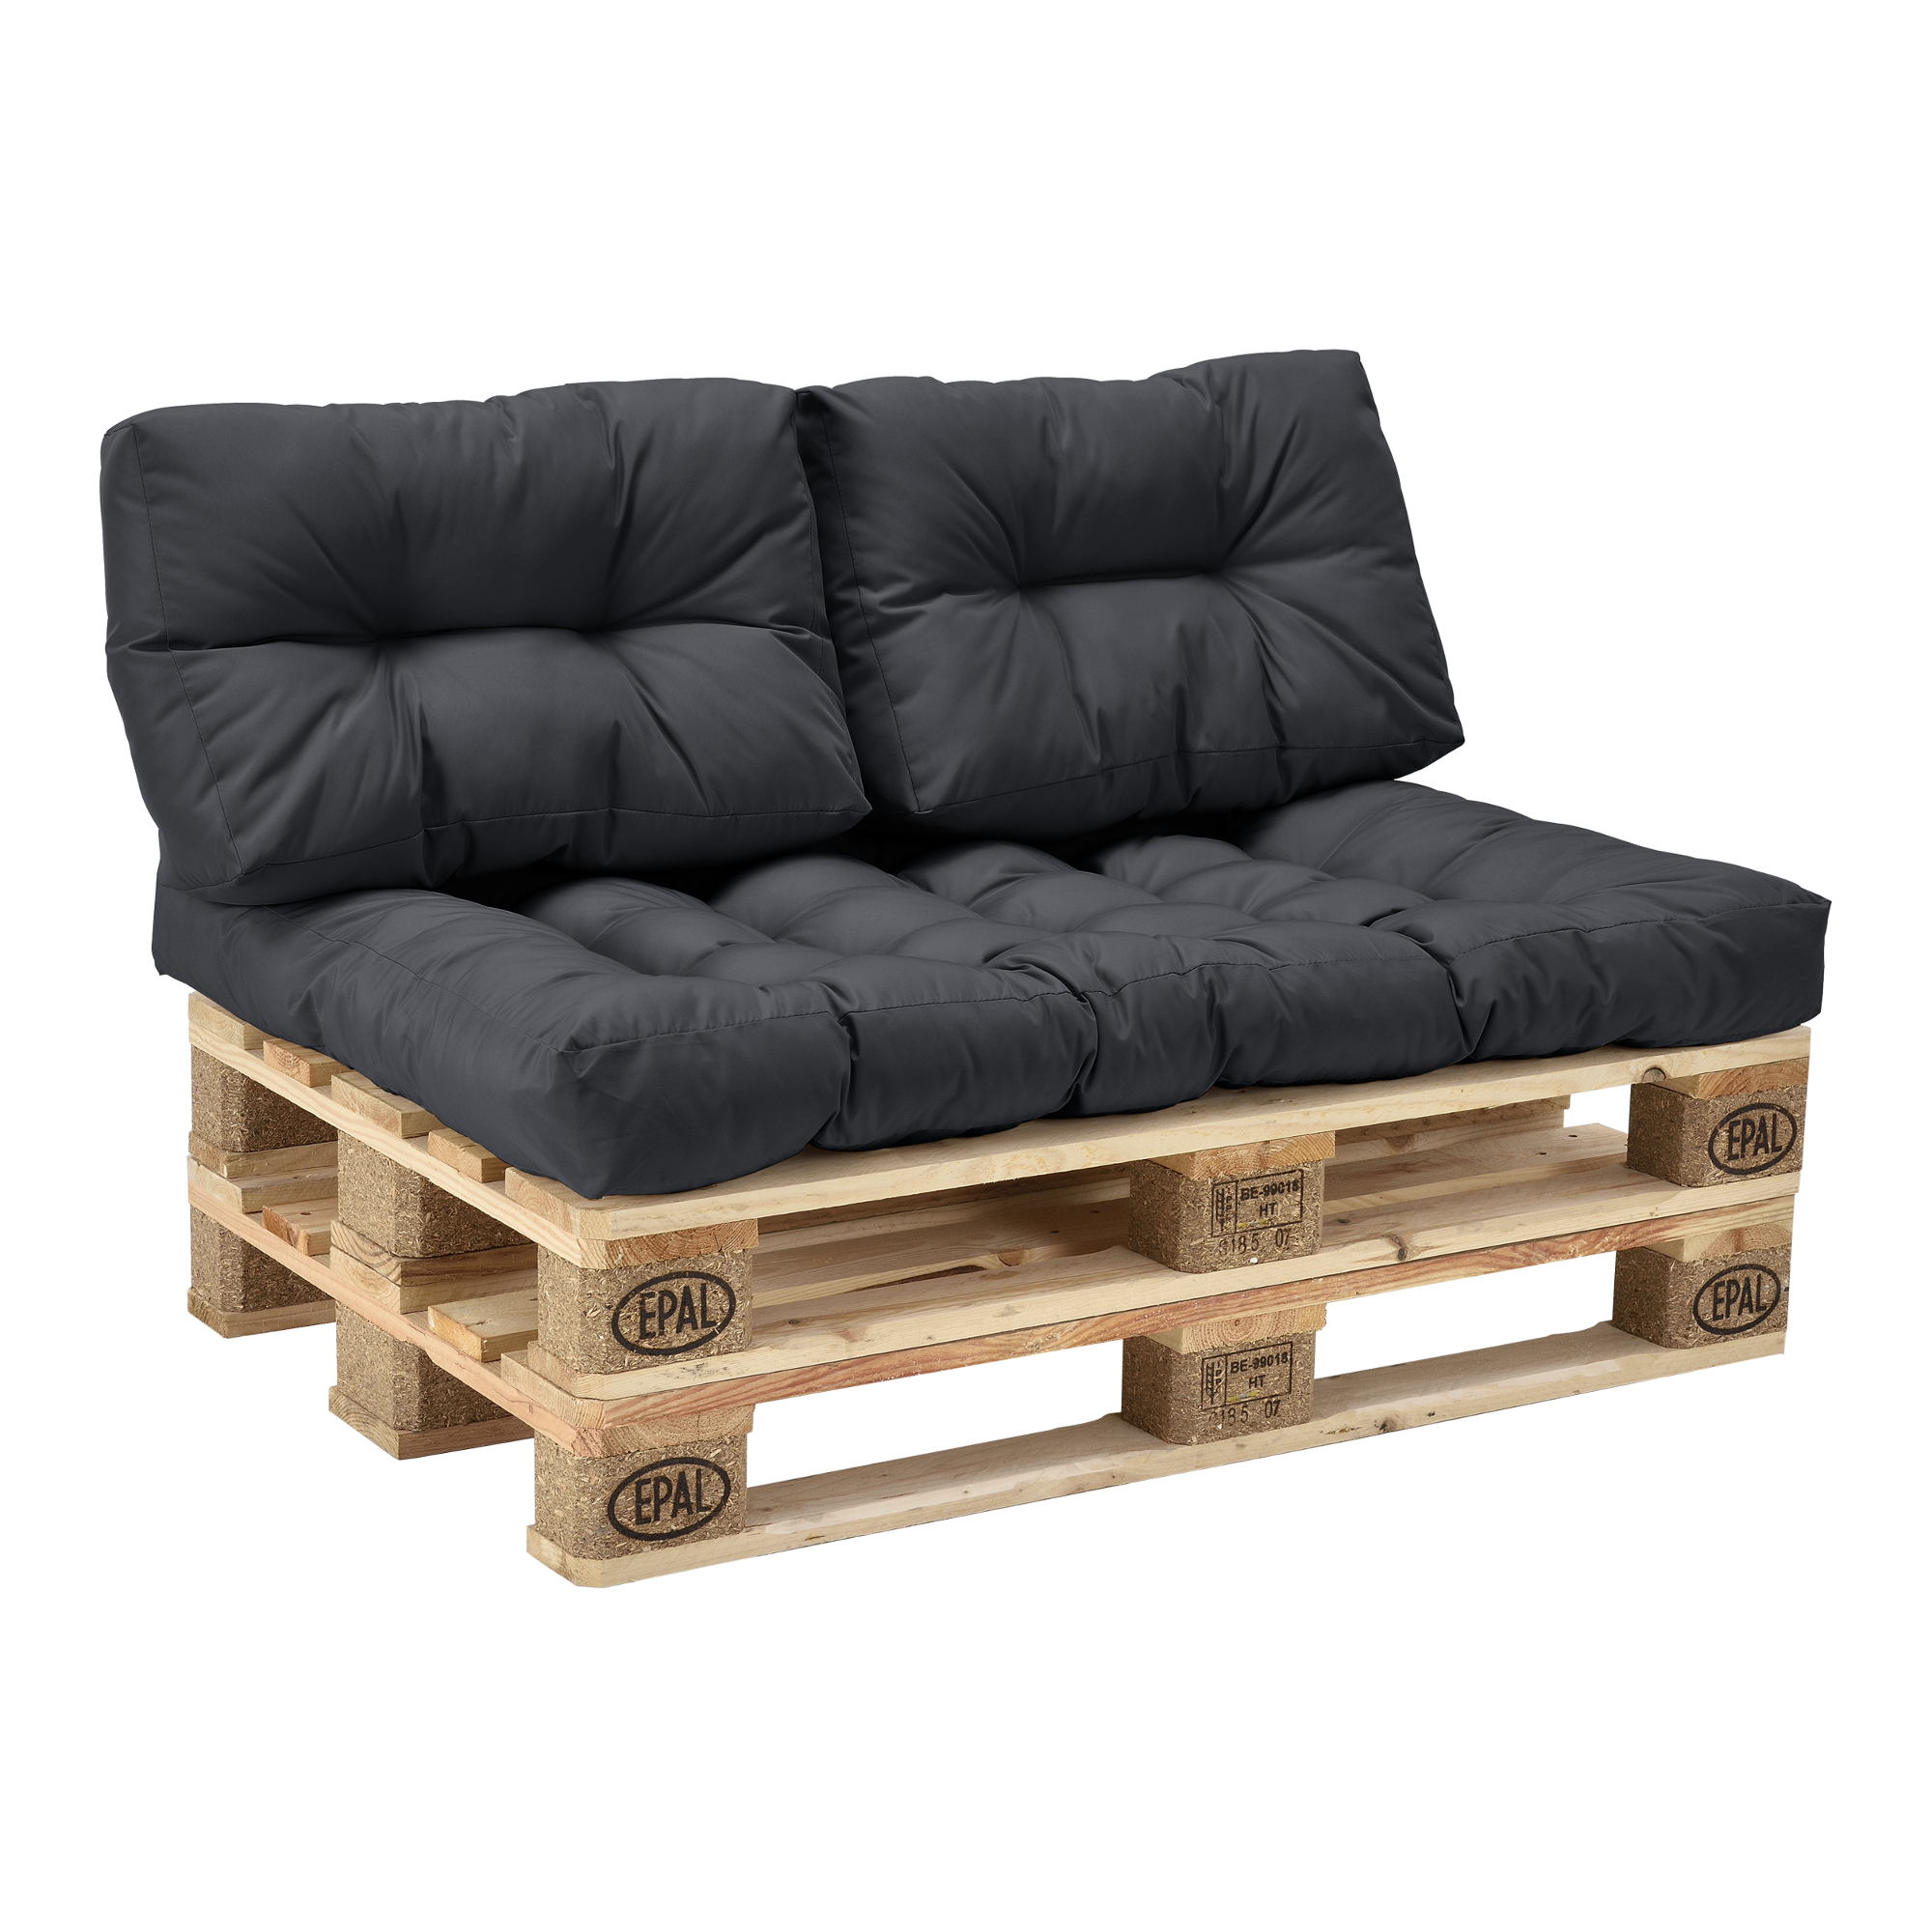 euro paletten sofa anthrazit 2er palettenpolster kissen r ckenlehne ebay. Black Bedroom Furniture Sets. Home Design Ideas